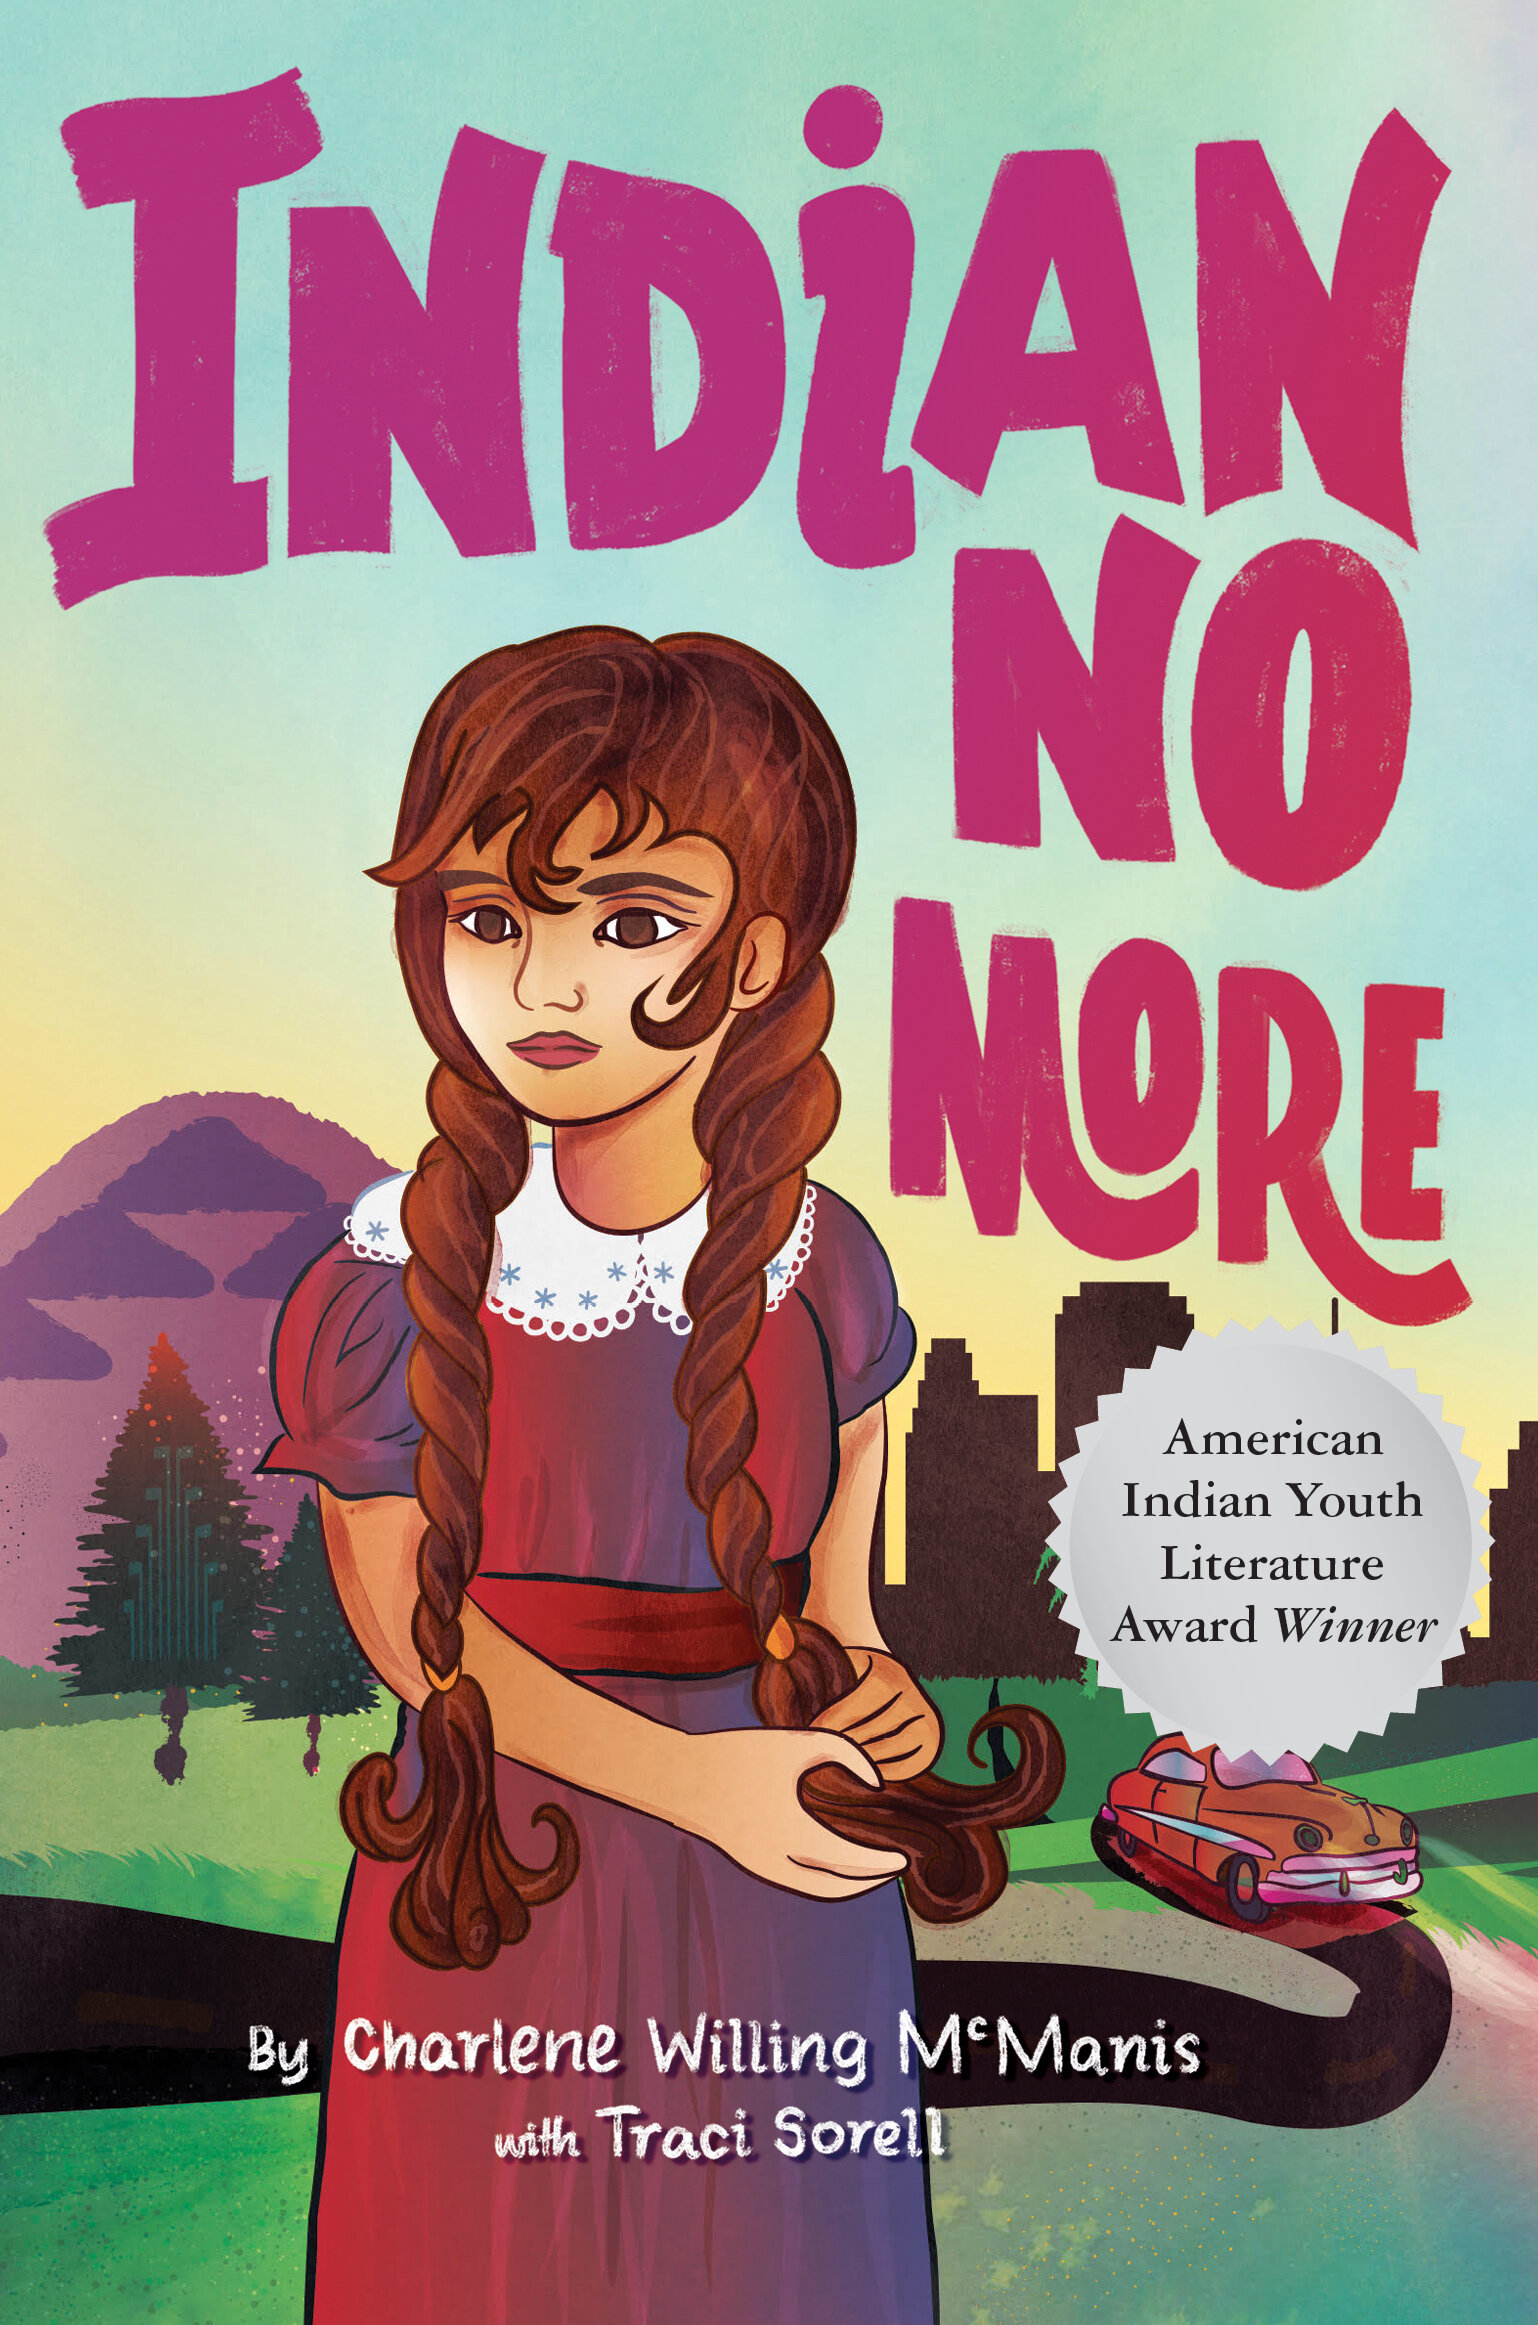 Indian No More — Traci Sorell